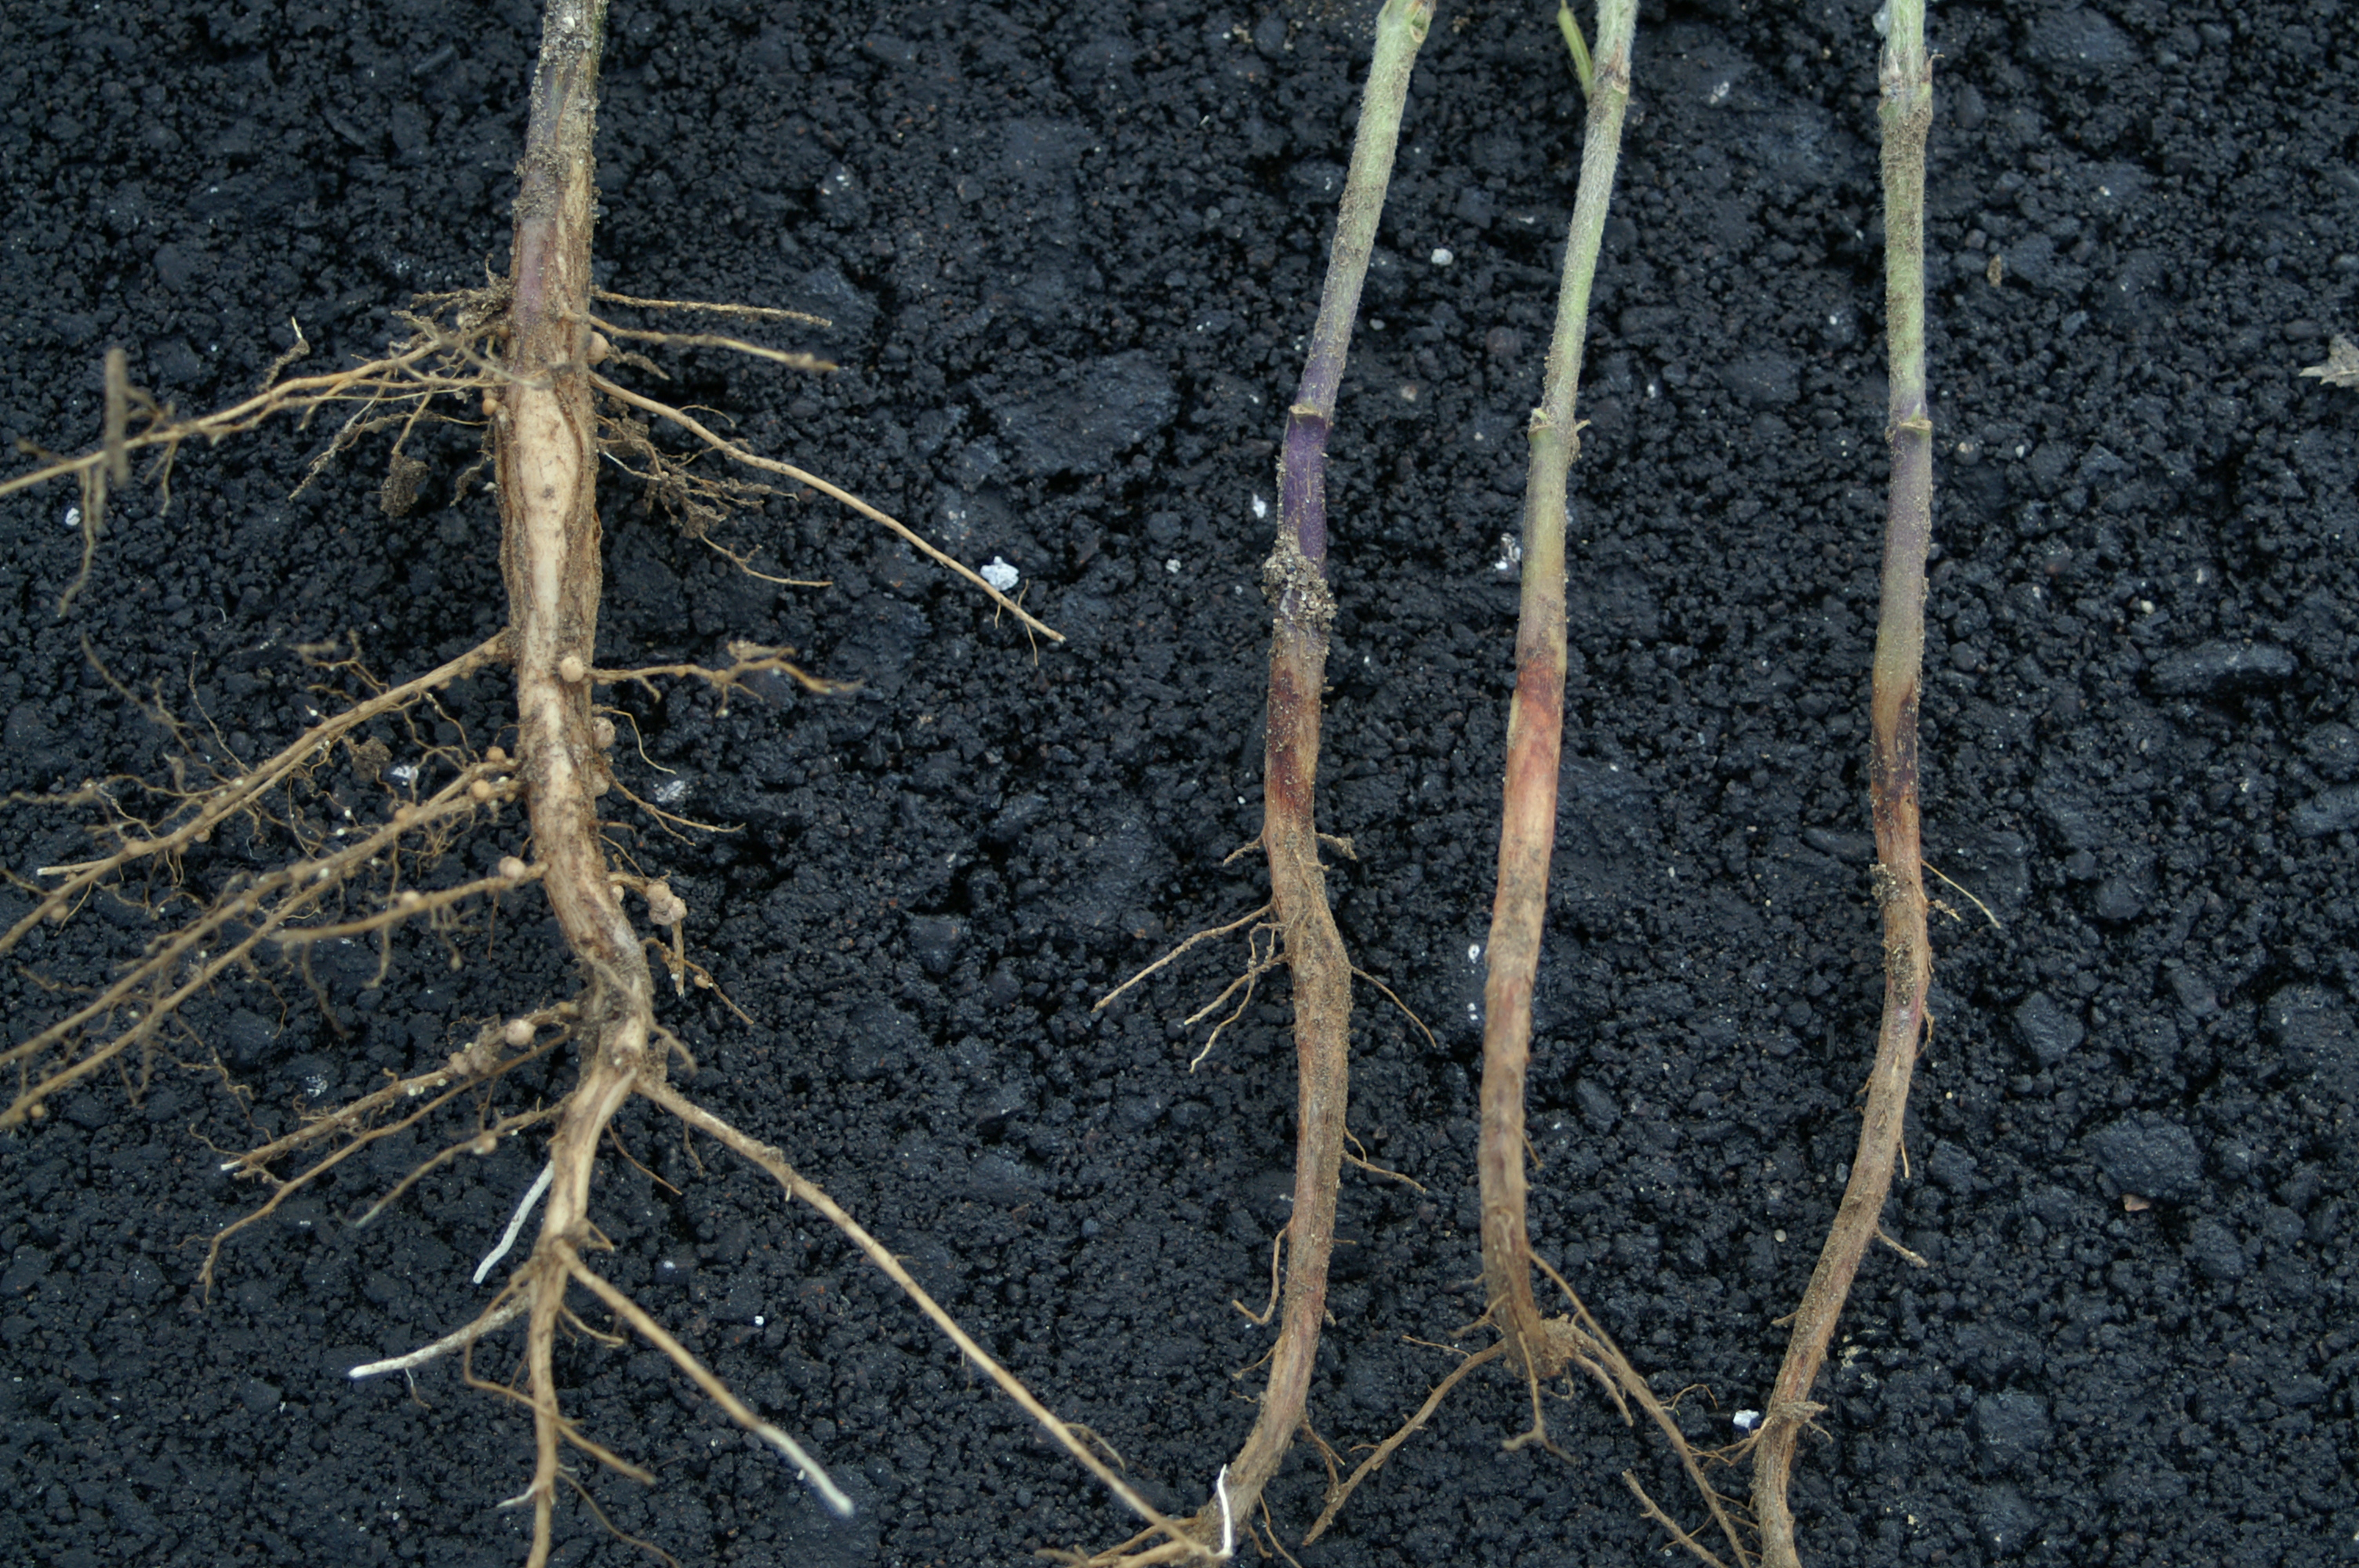 Rhizoctonia infected soybean plants (right) compared to a healthy plant (left).